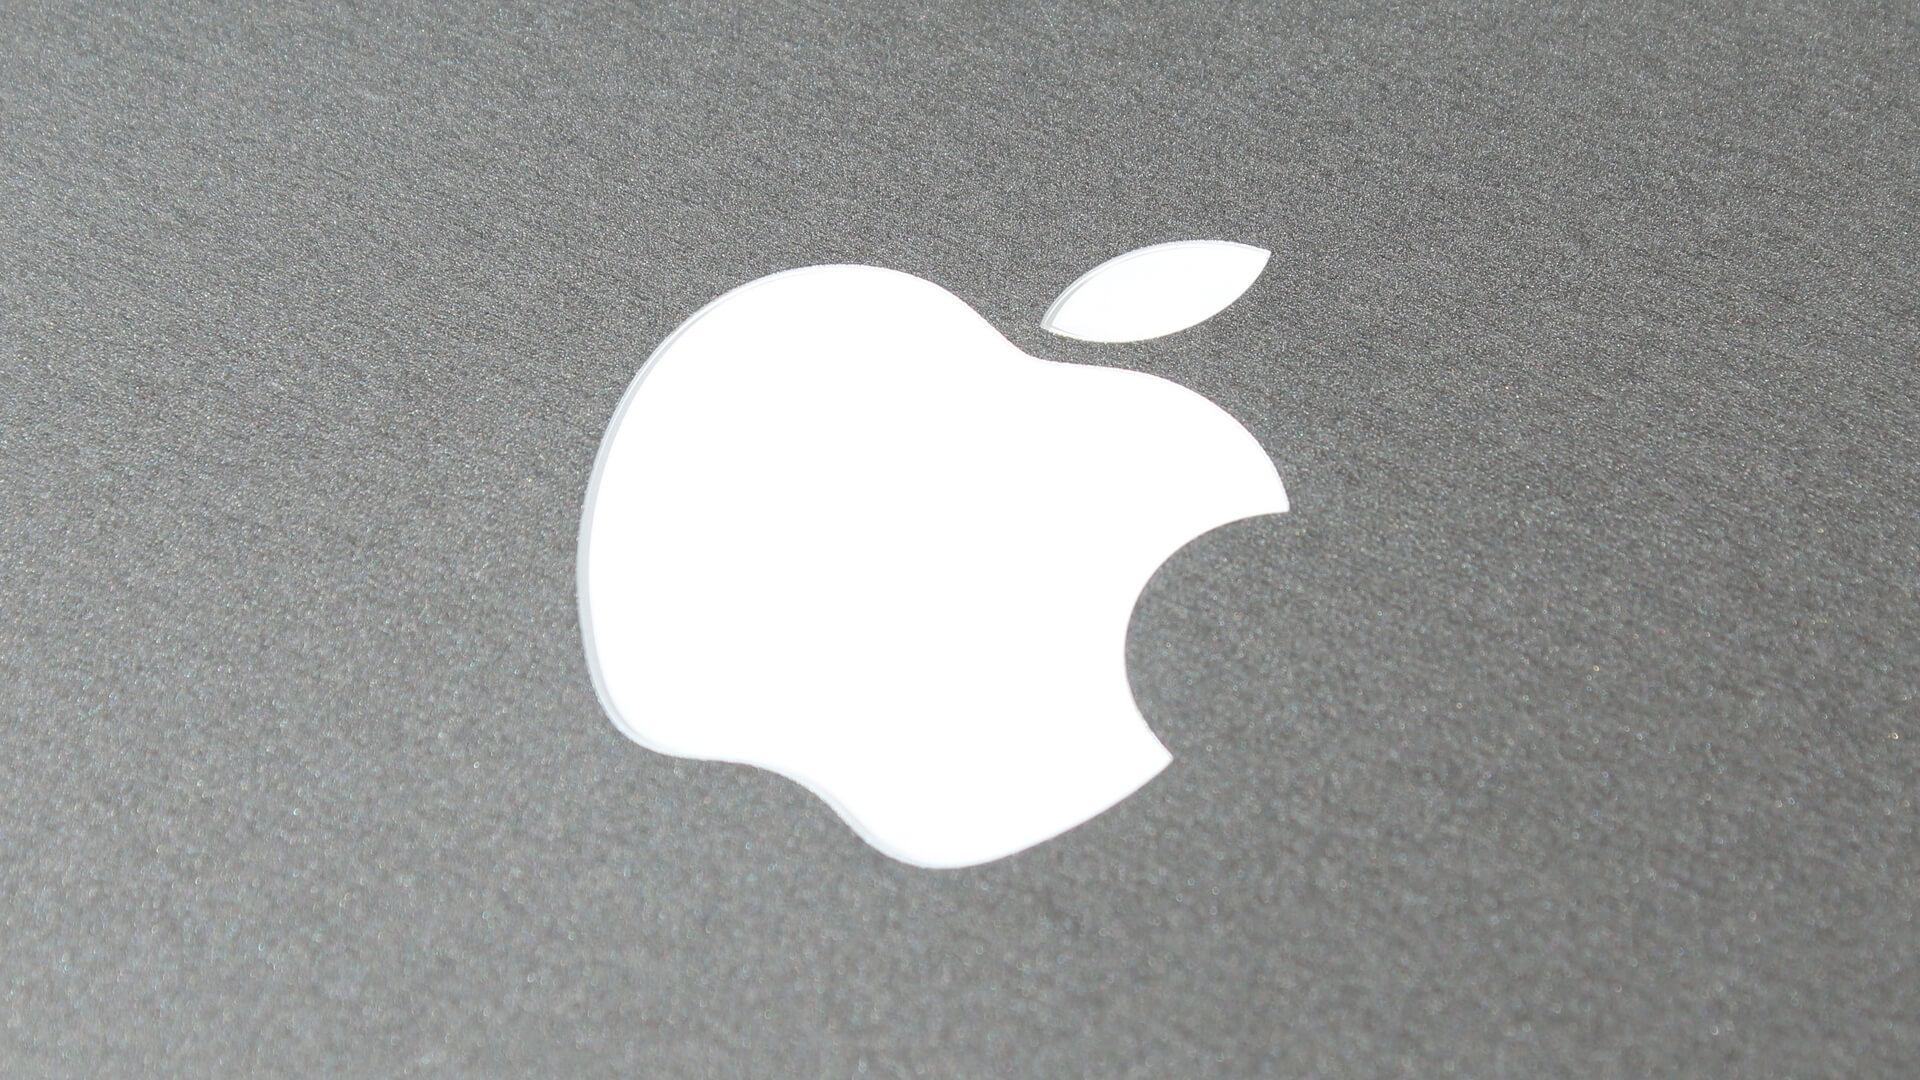 Apple VR/AR Controller Picture Reportedly Leaked